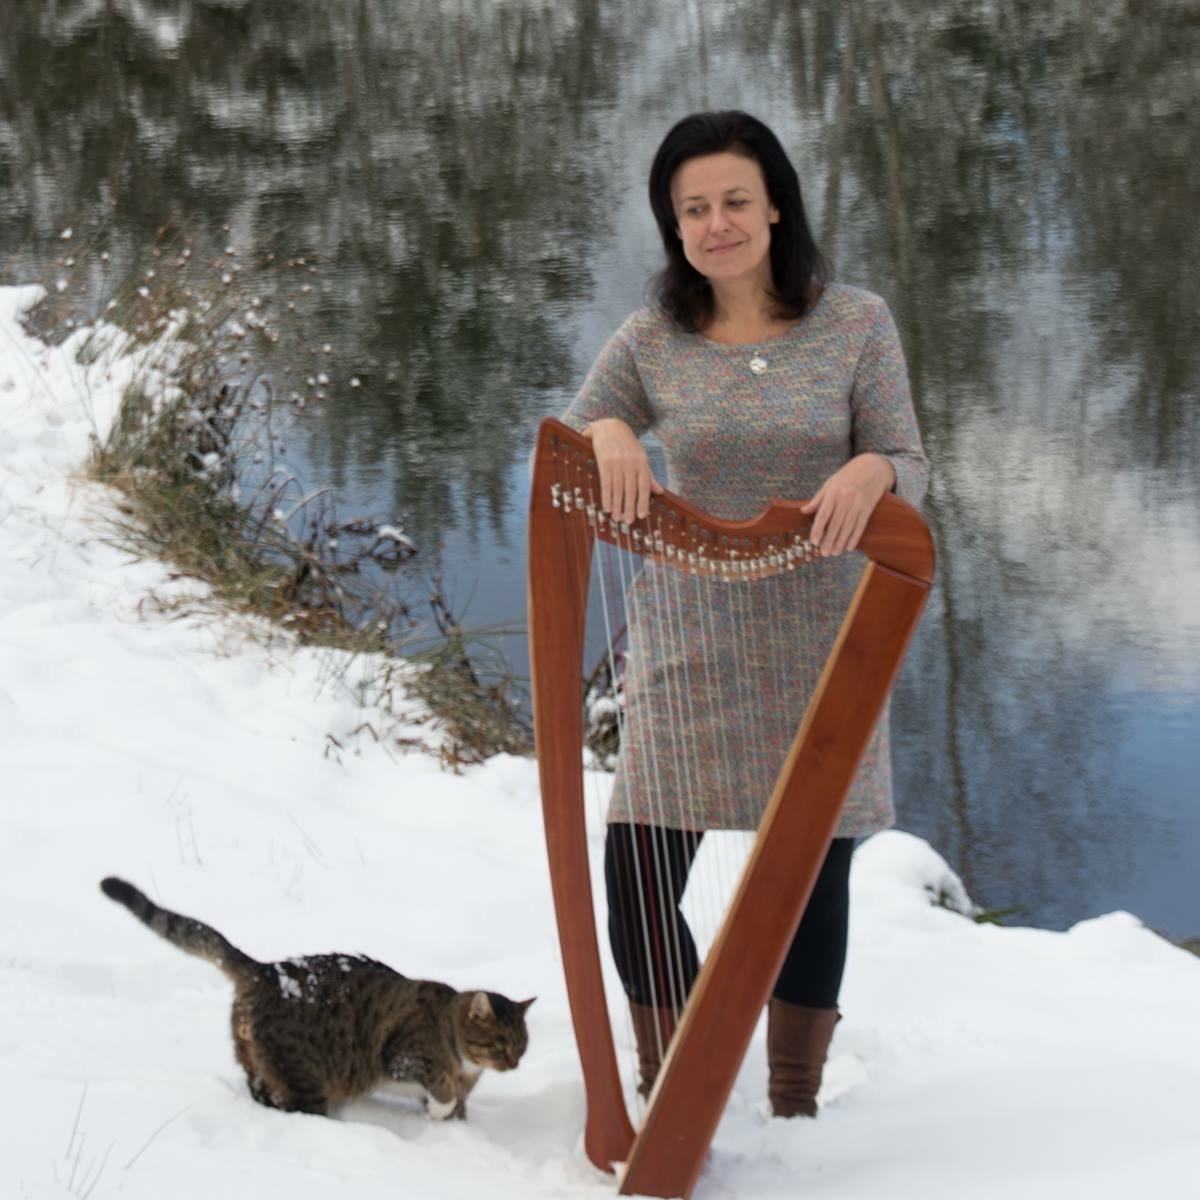 Cat photobomb! Jana Bauerova posing with her Rees Shaylee Meadows in cherry with full Rees sharping levers.